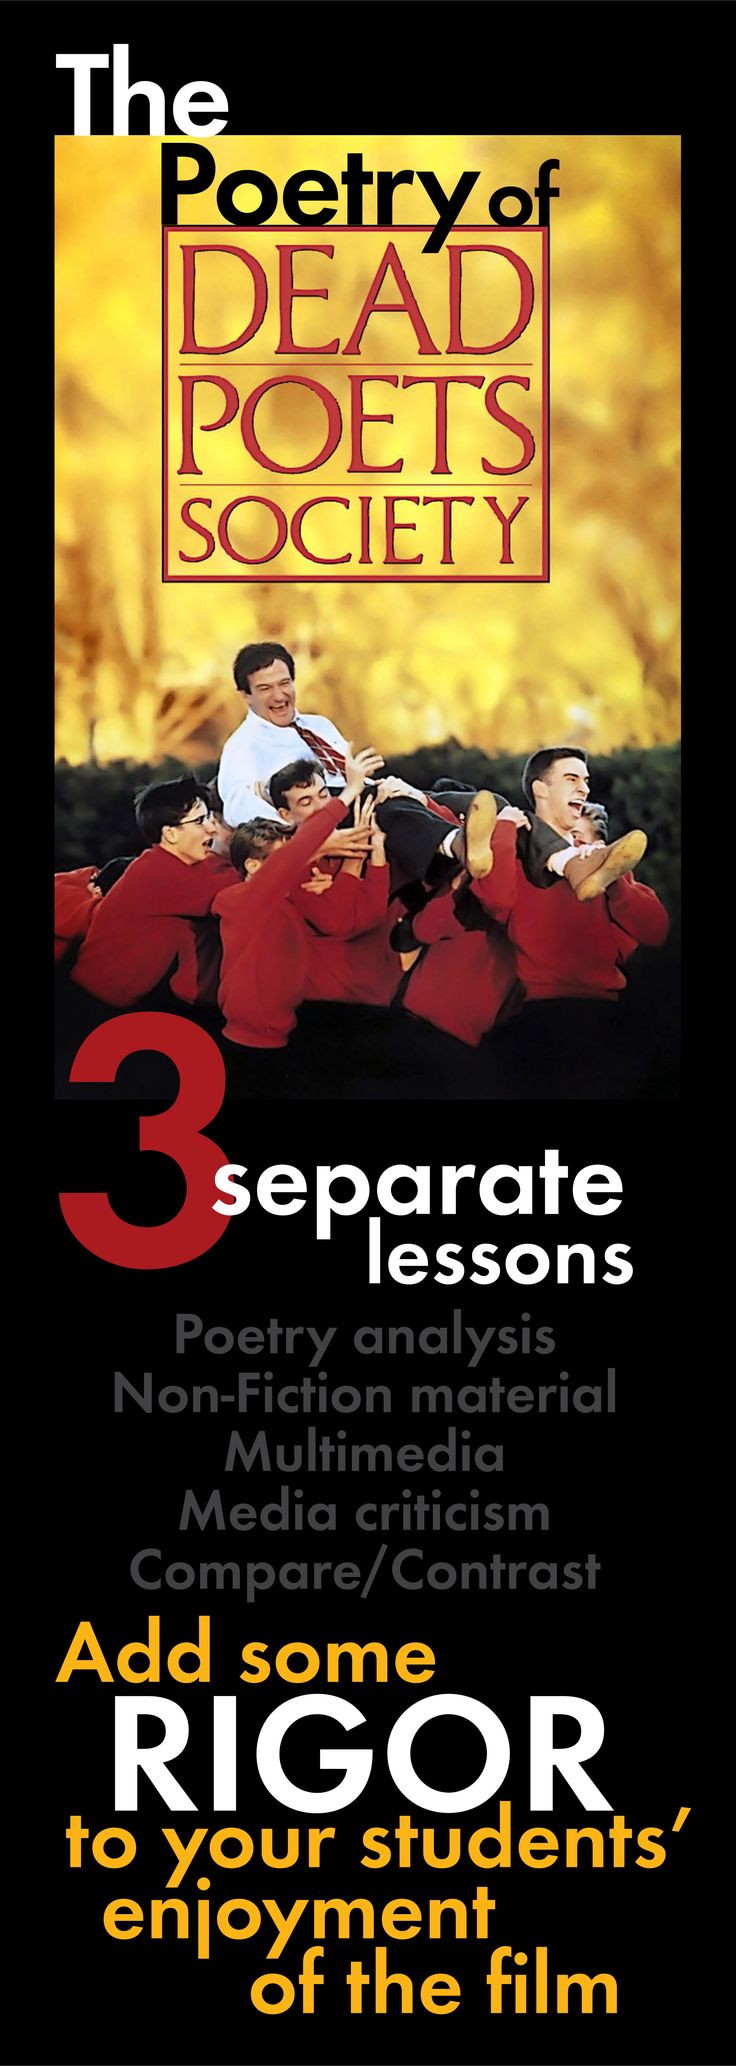 dead poet society freedom 'dead poets society' by desson howe washington post staff poets also ends with an uplifting note that peals a bell for intellectual freedom, creativity.